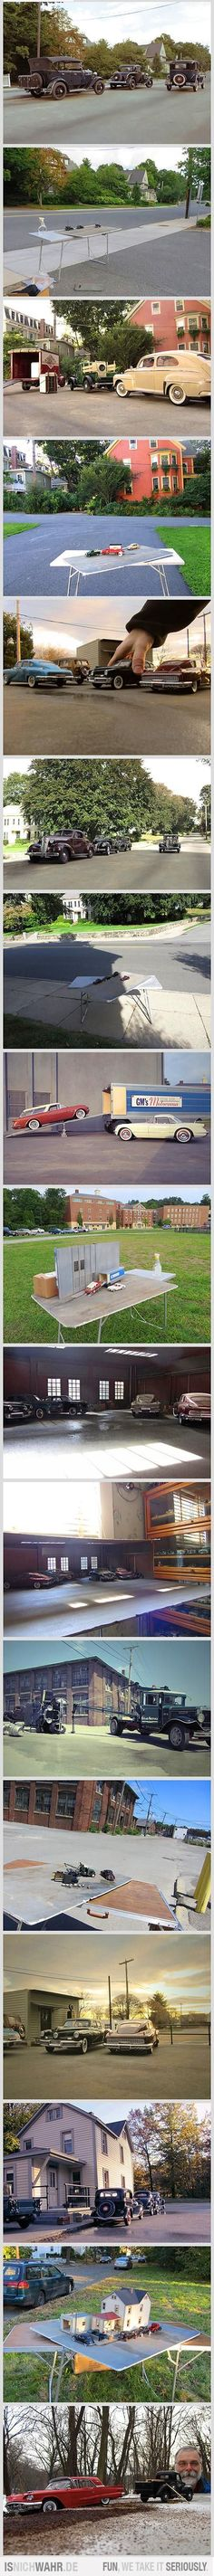 Model Cars in Reallife